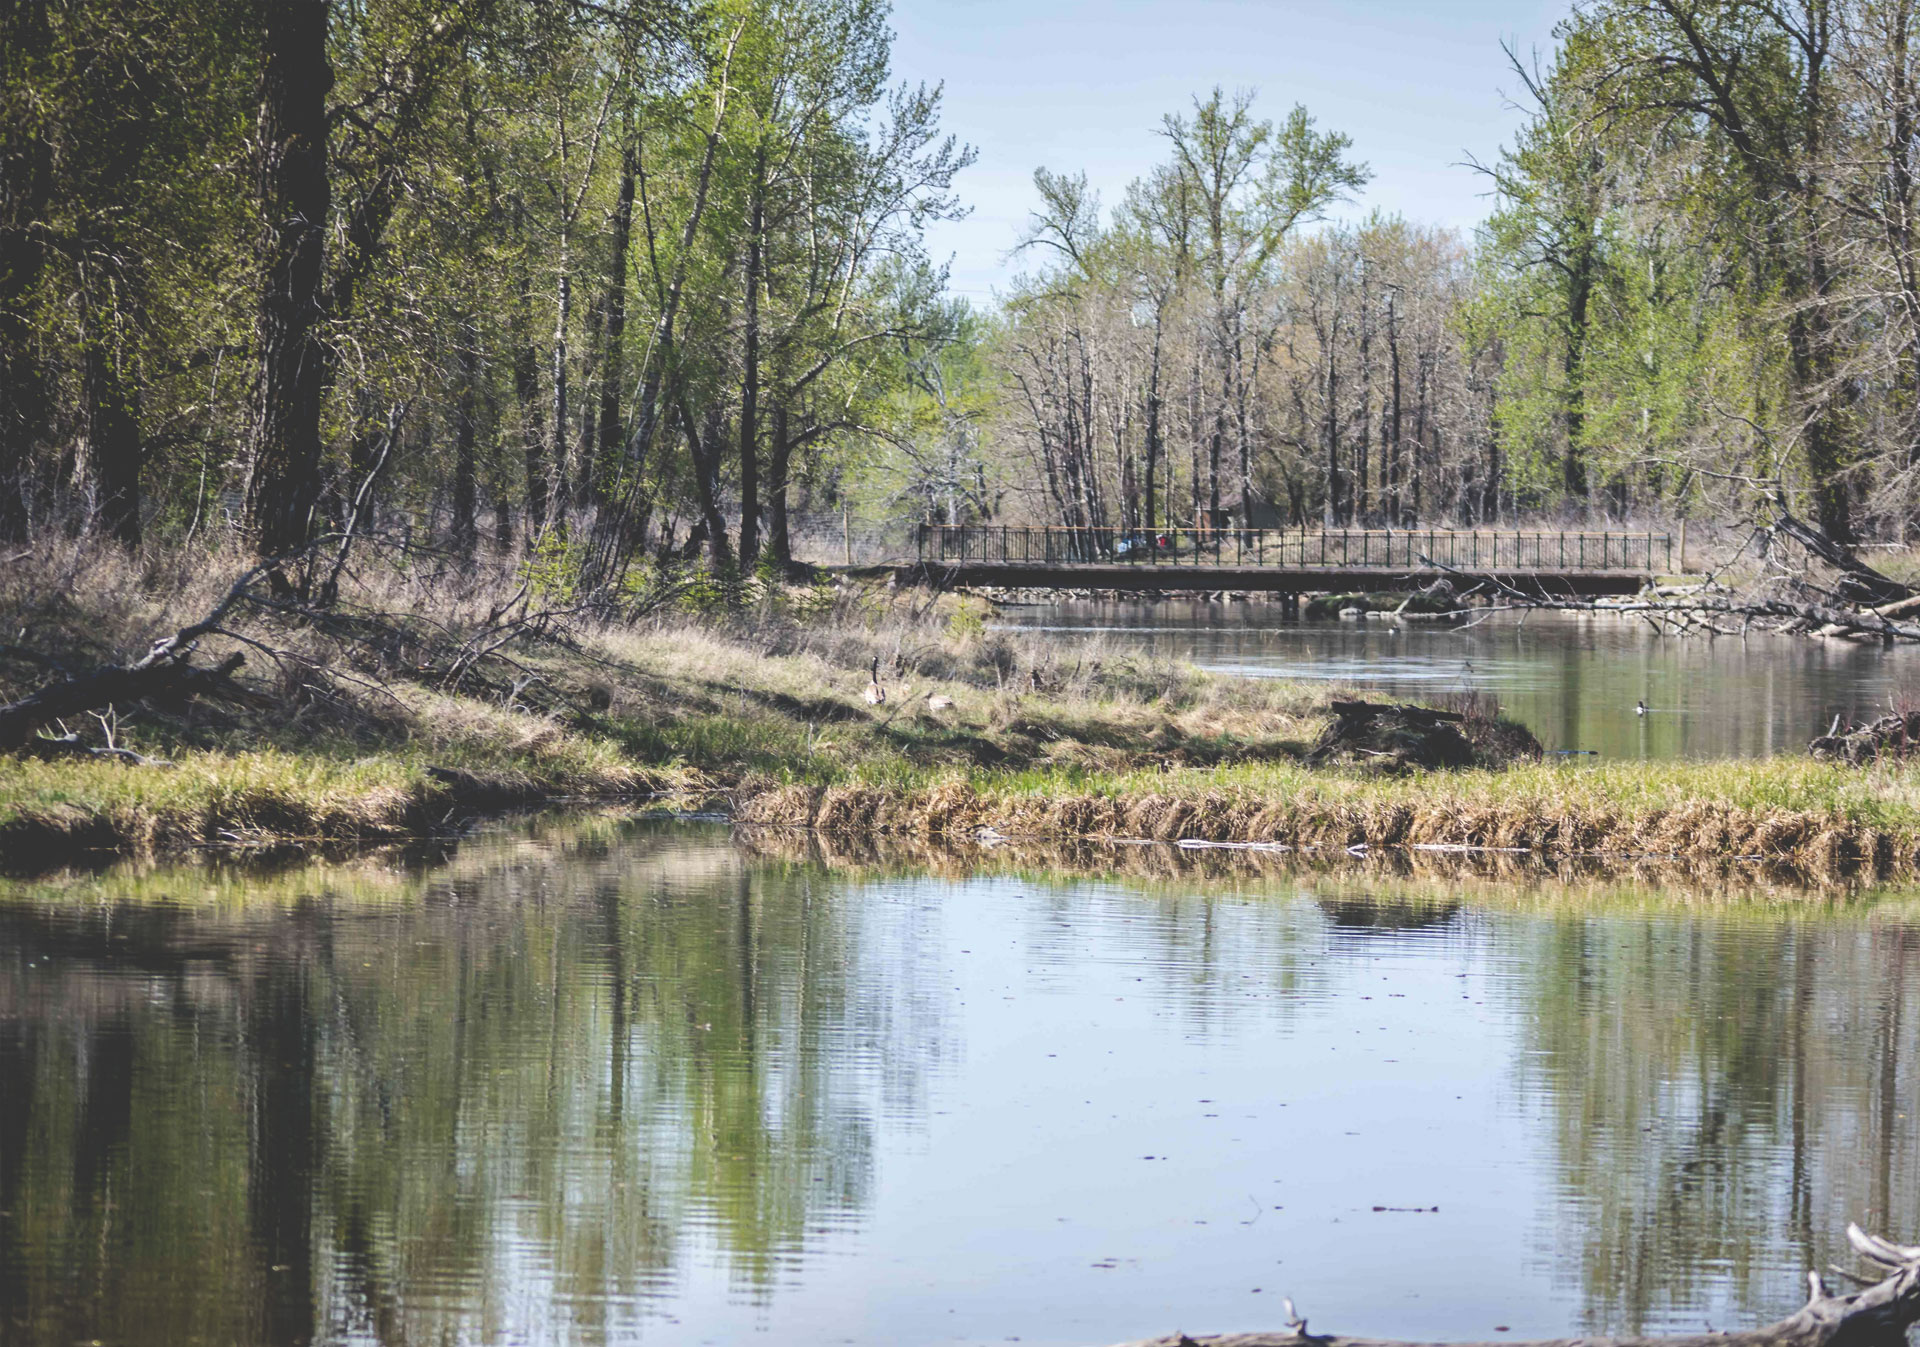 Take a hike through the Inglewood Bird Sanctuary at any point during the year